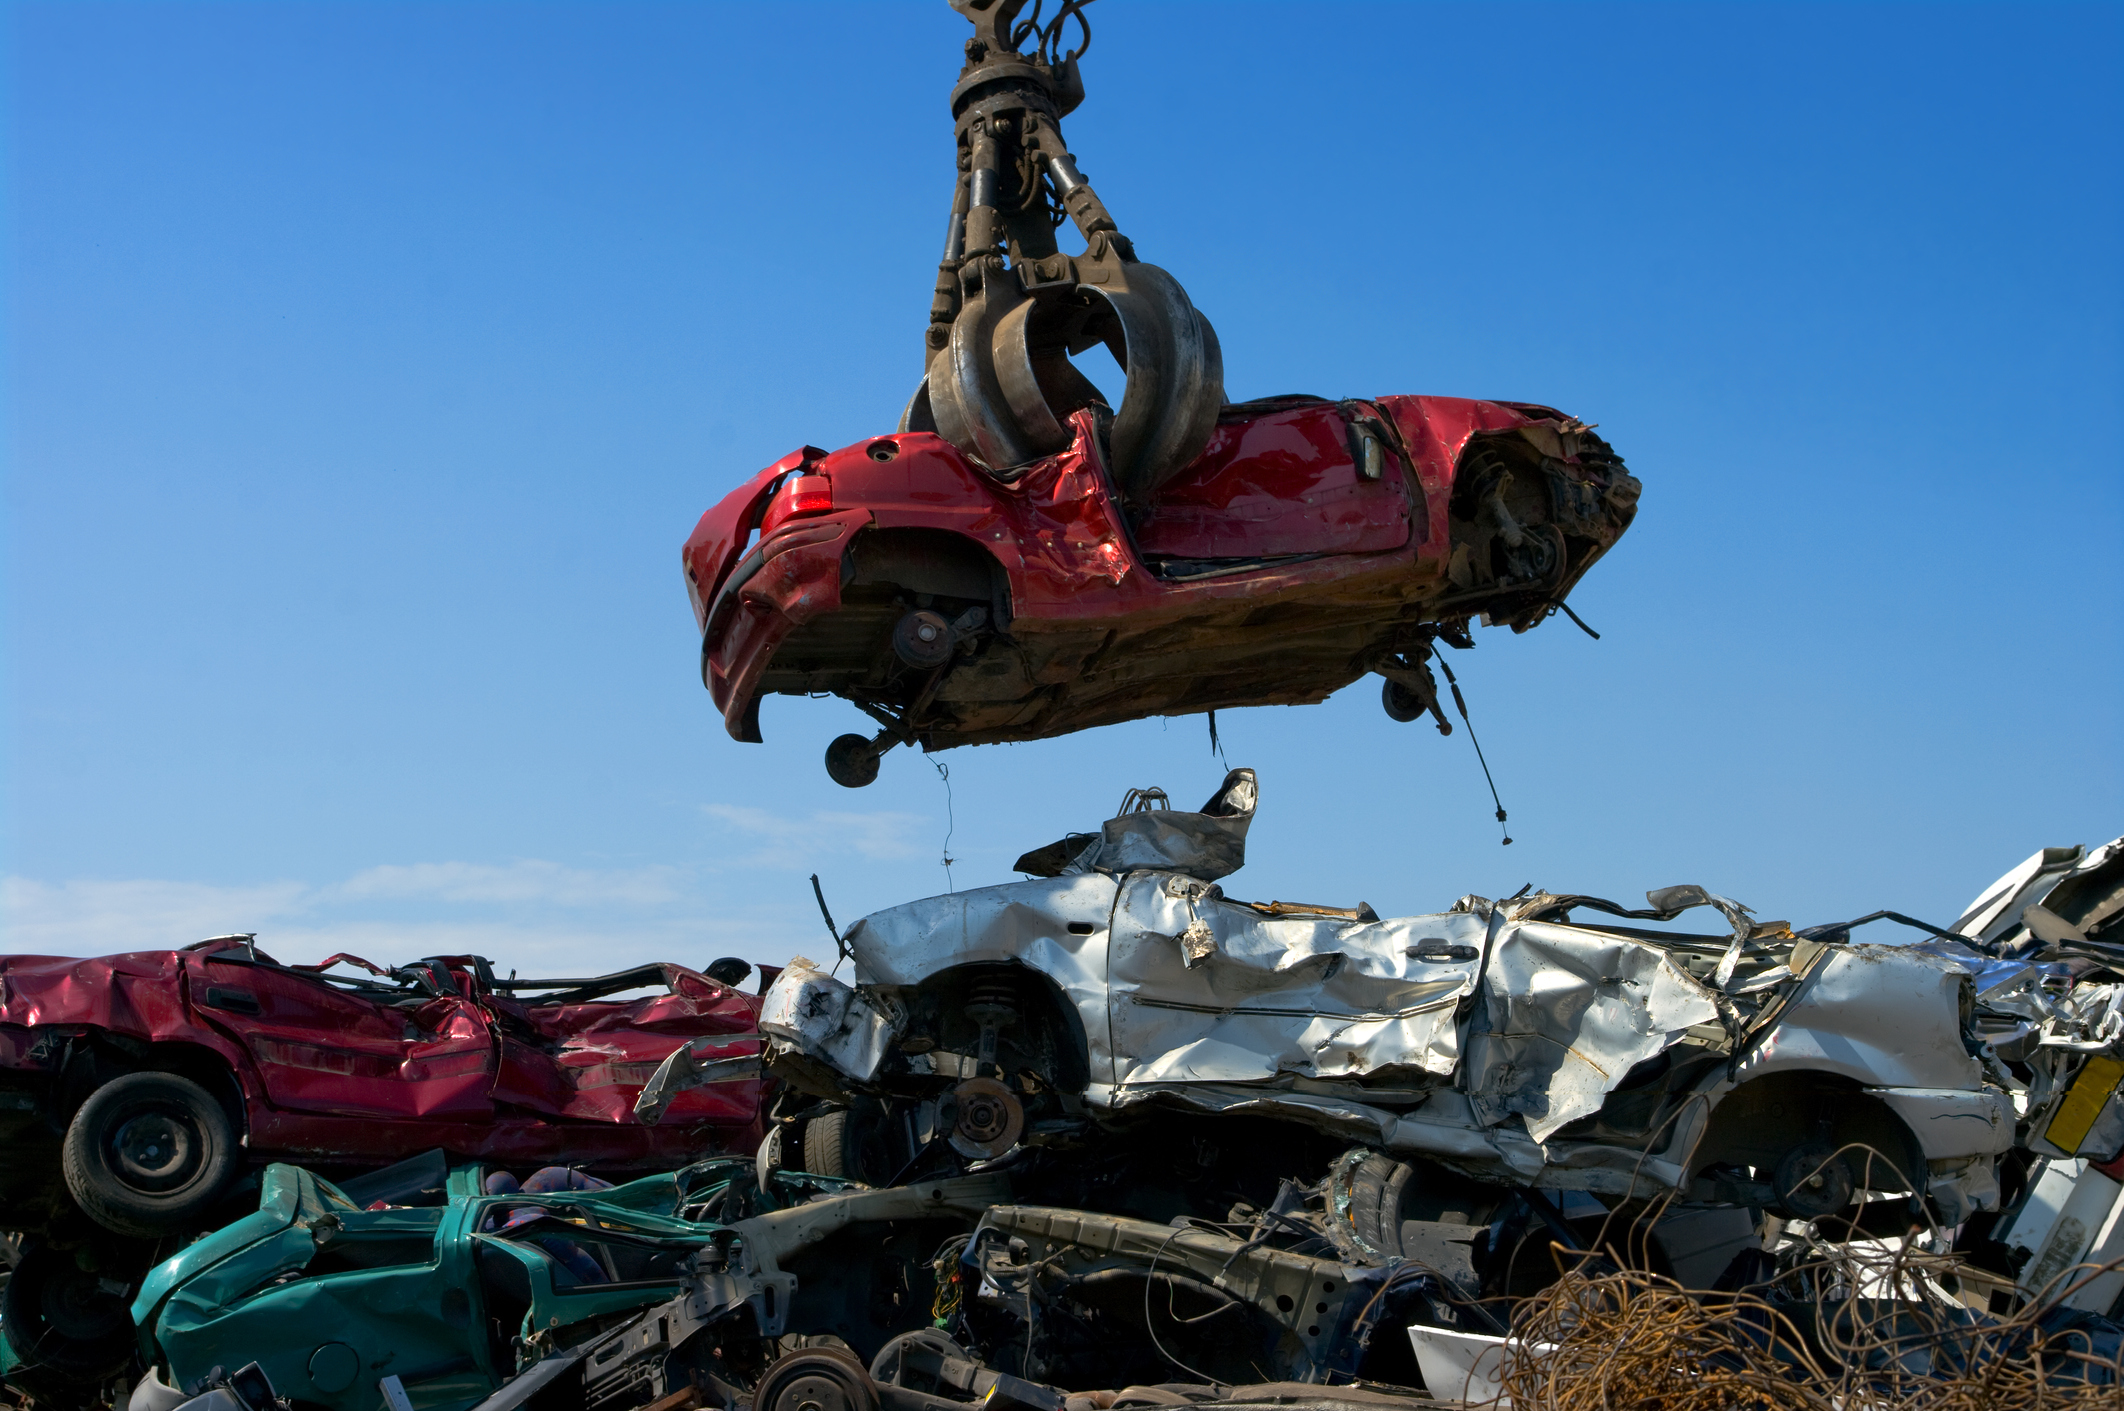 Automobile carried by crane for scrap metal processing images